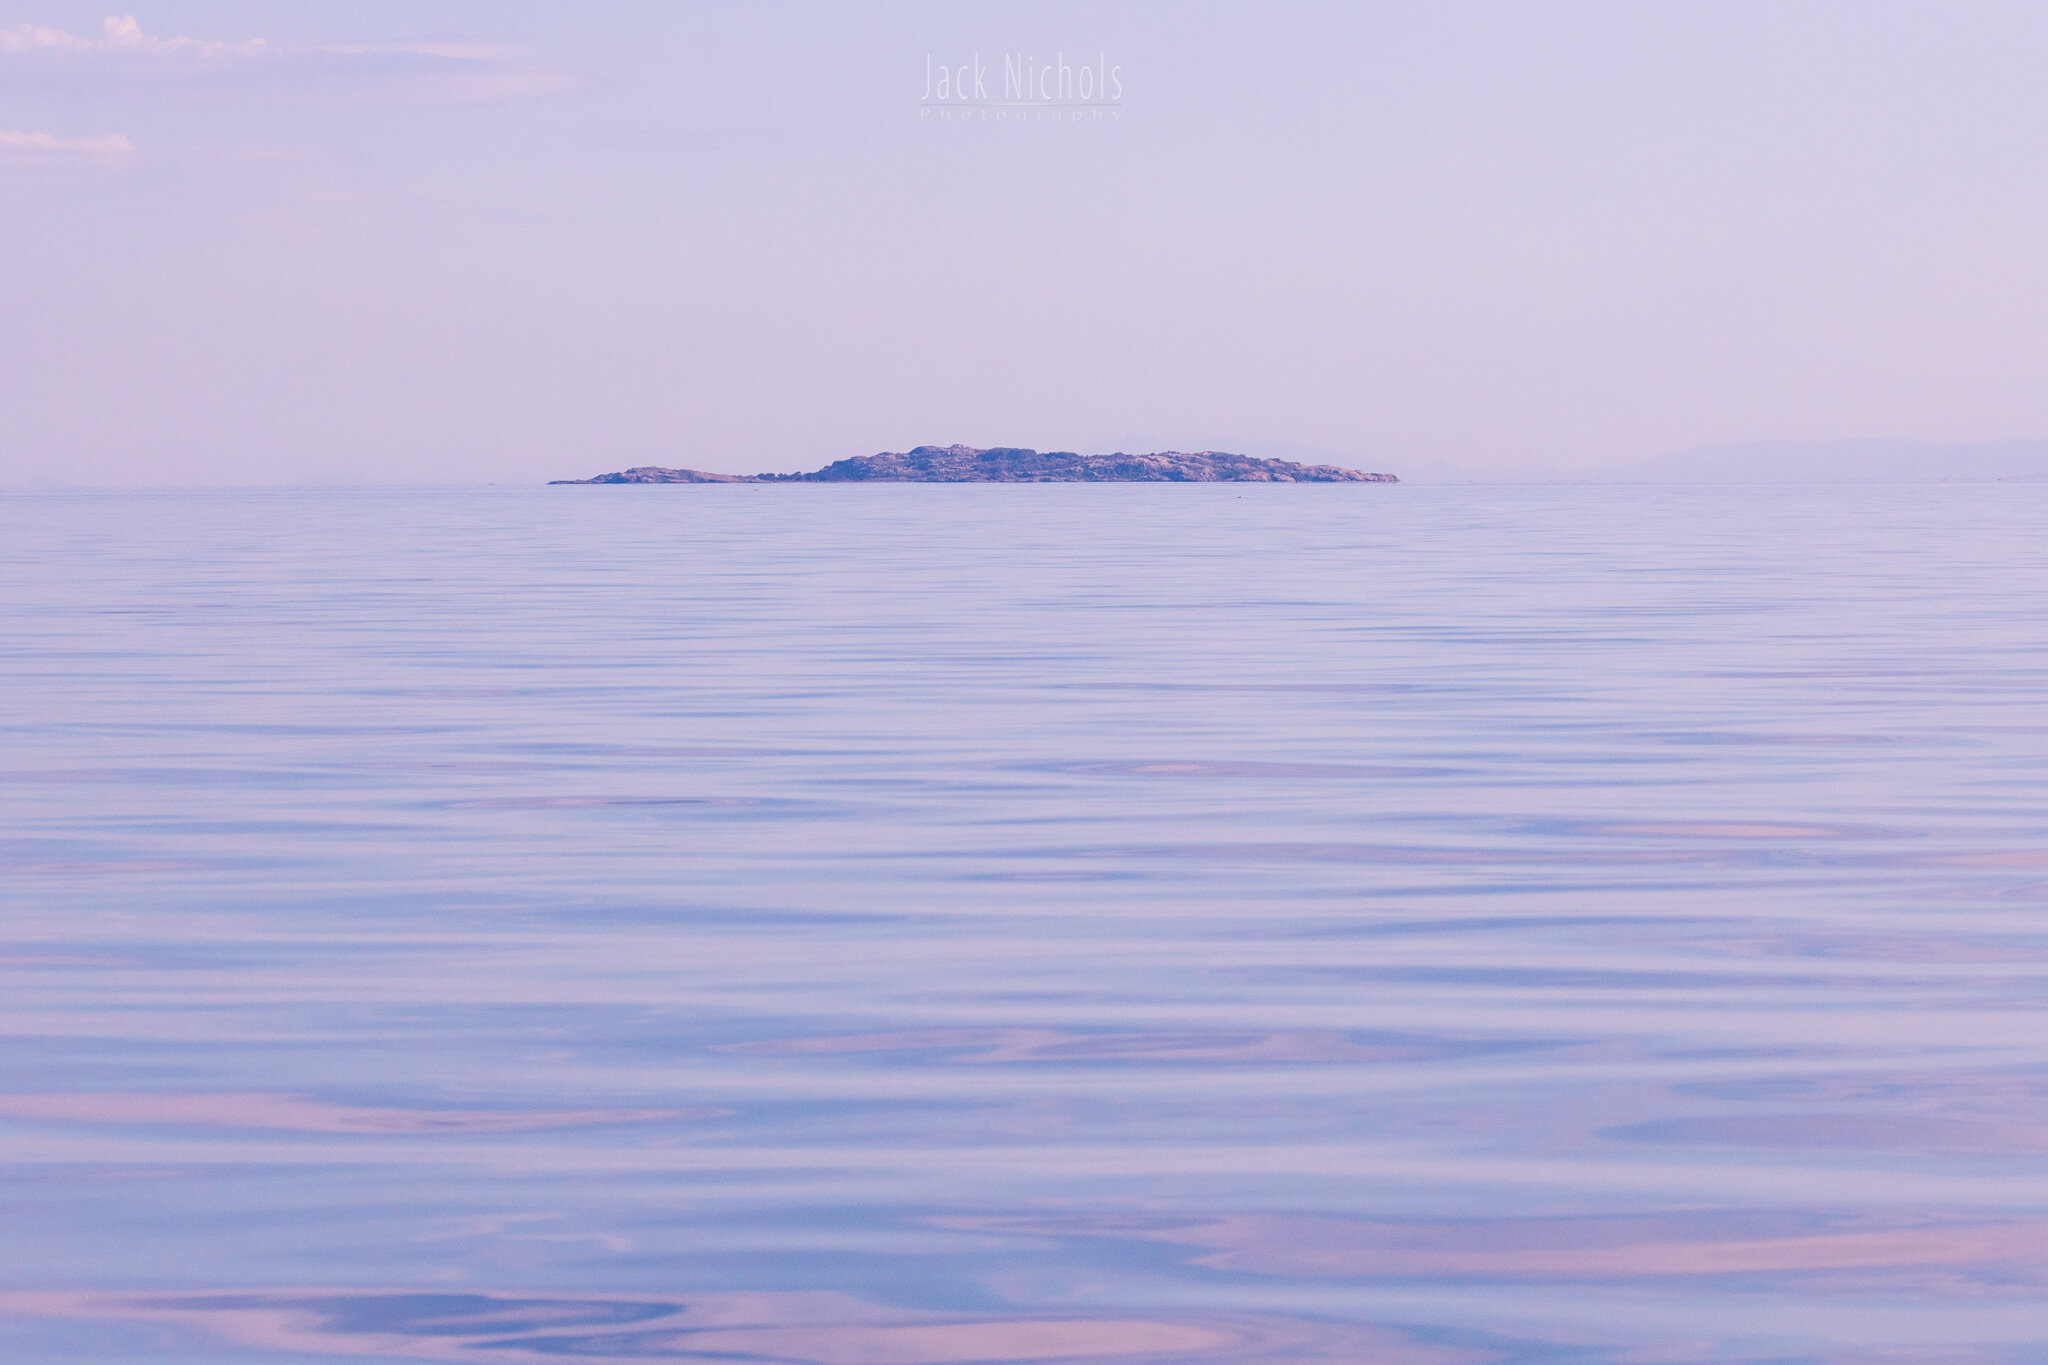 Campbell River, Water - Small distant island on the horizon with calm seas-20190906.jpg